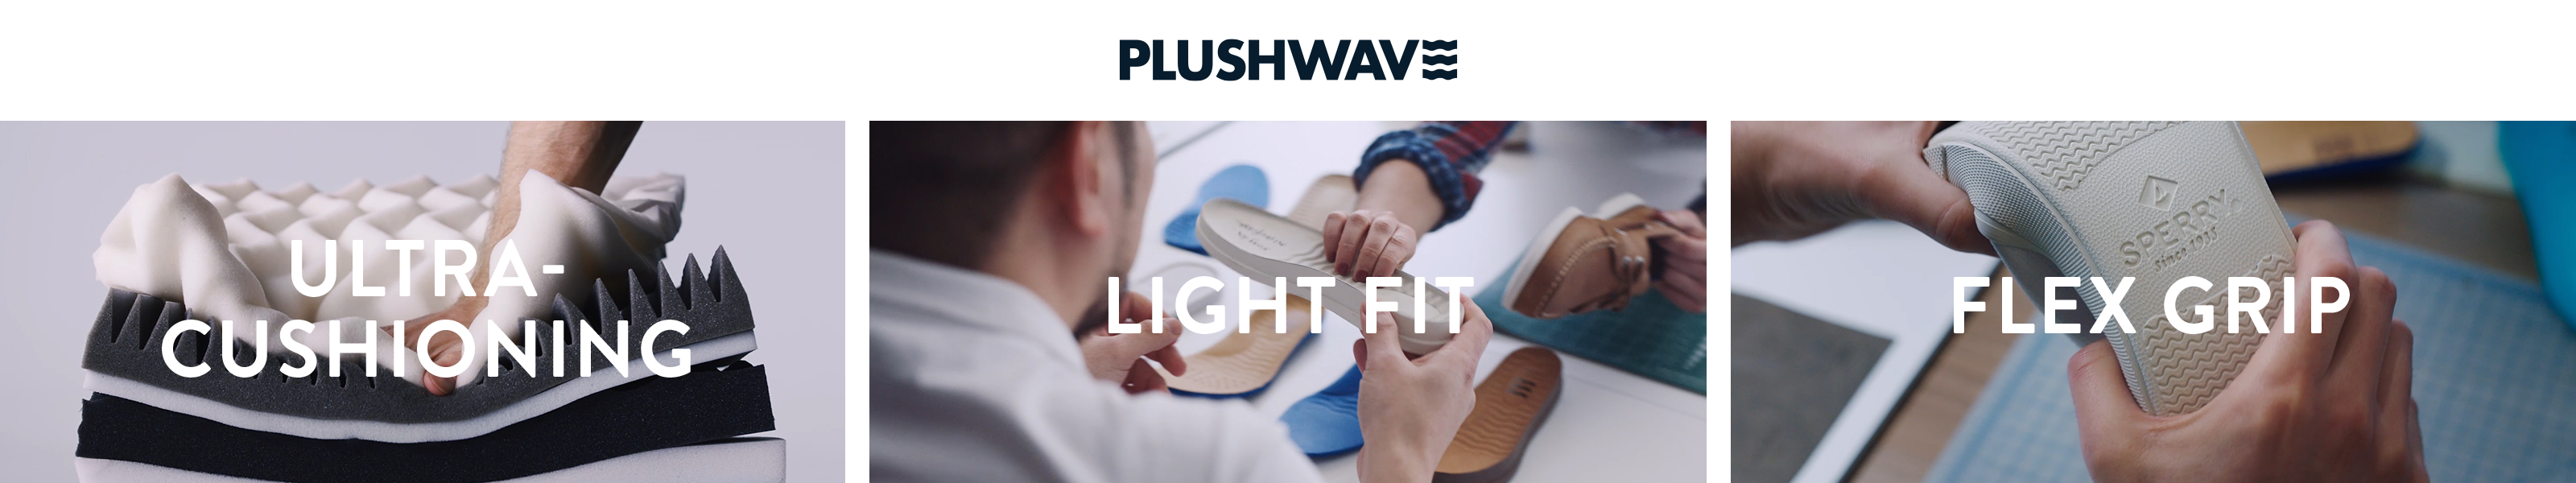 Plushwave - ultra-cushioning, light fit, flex grip